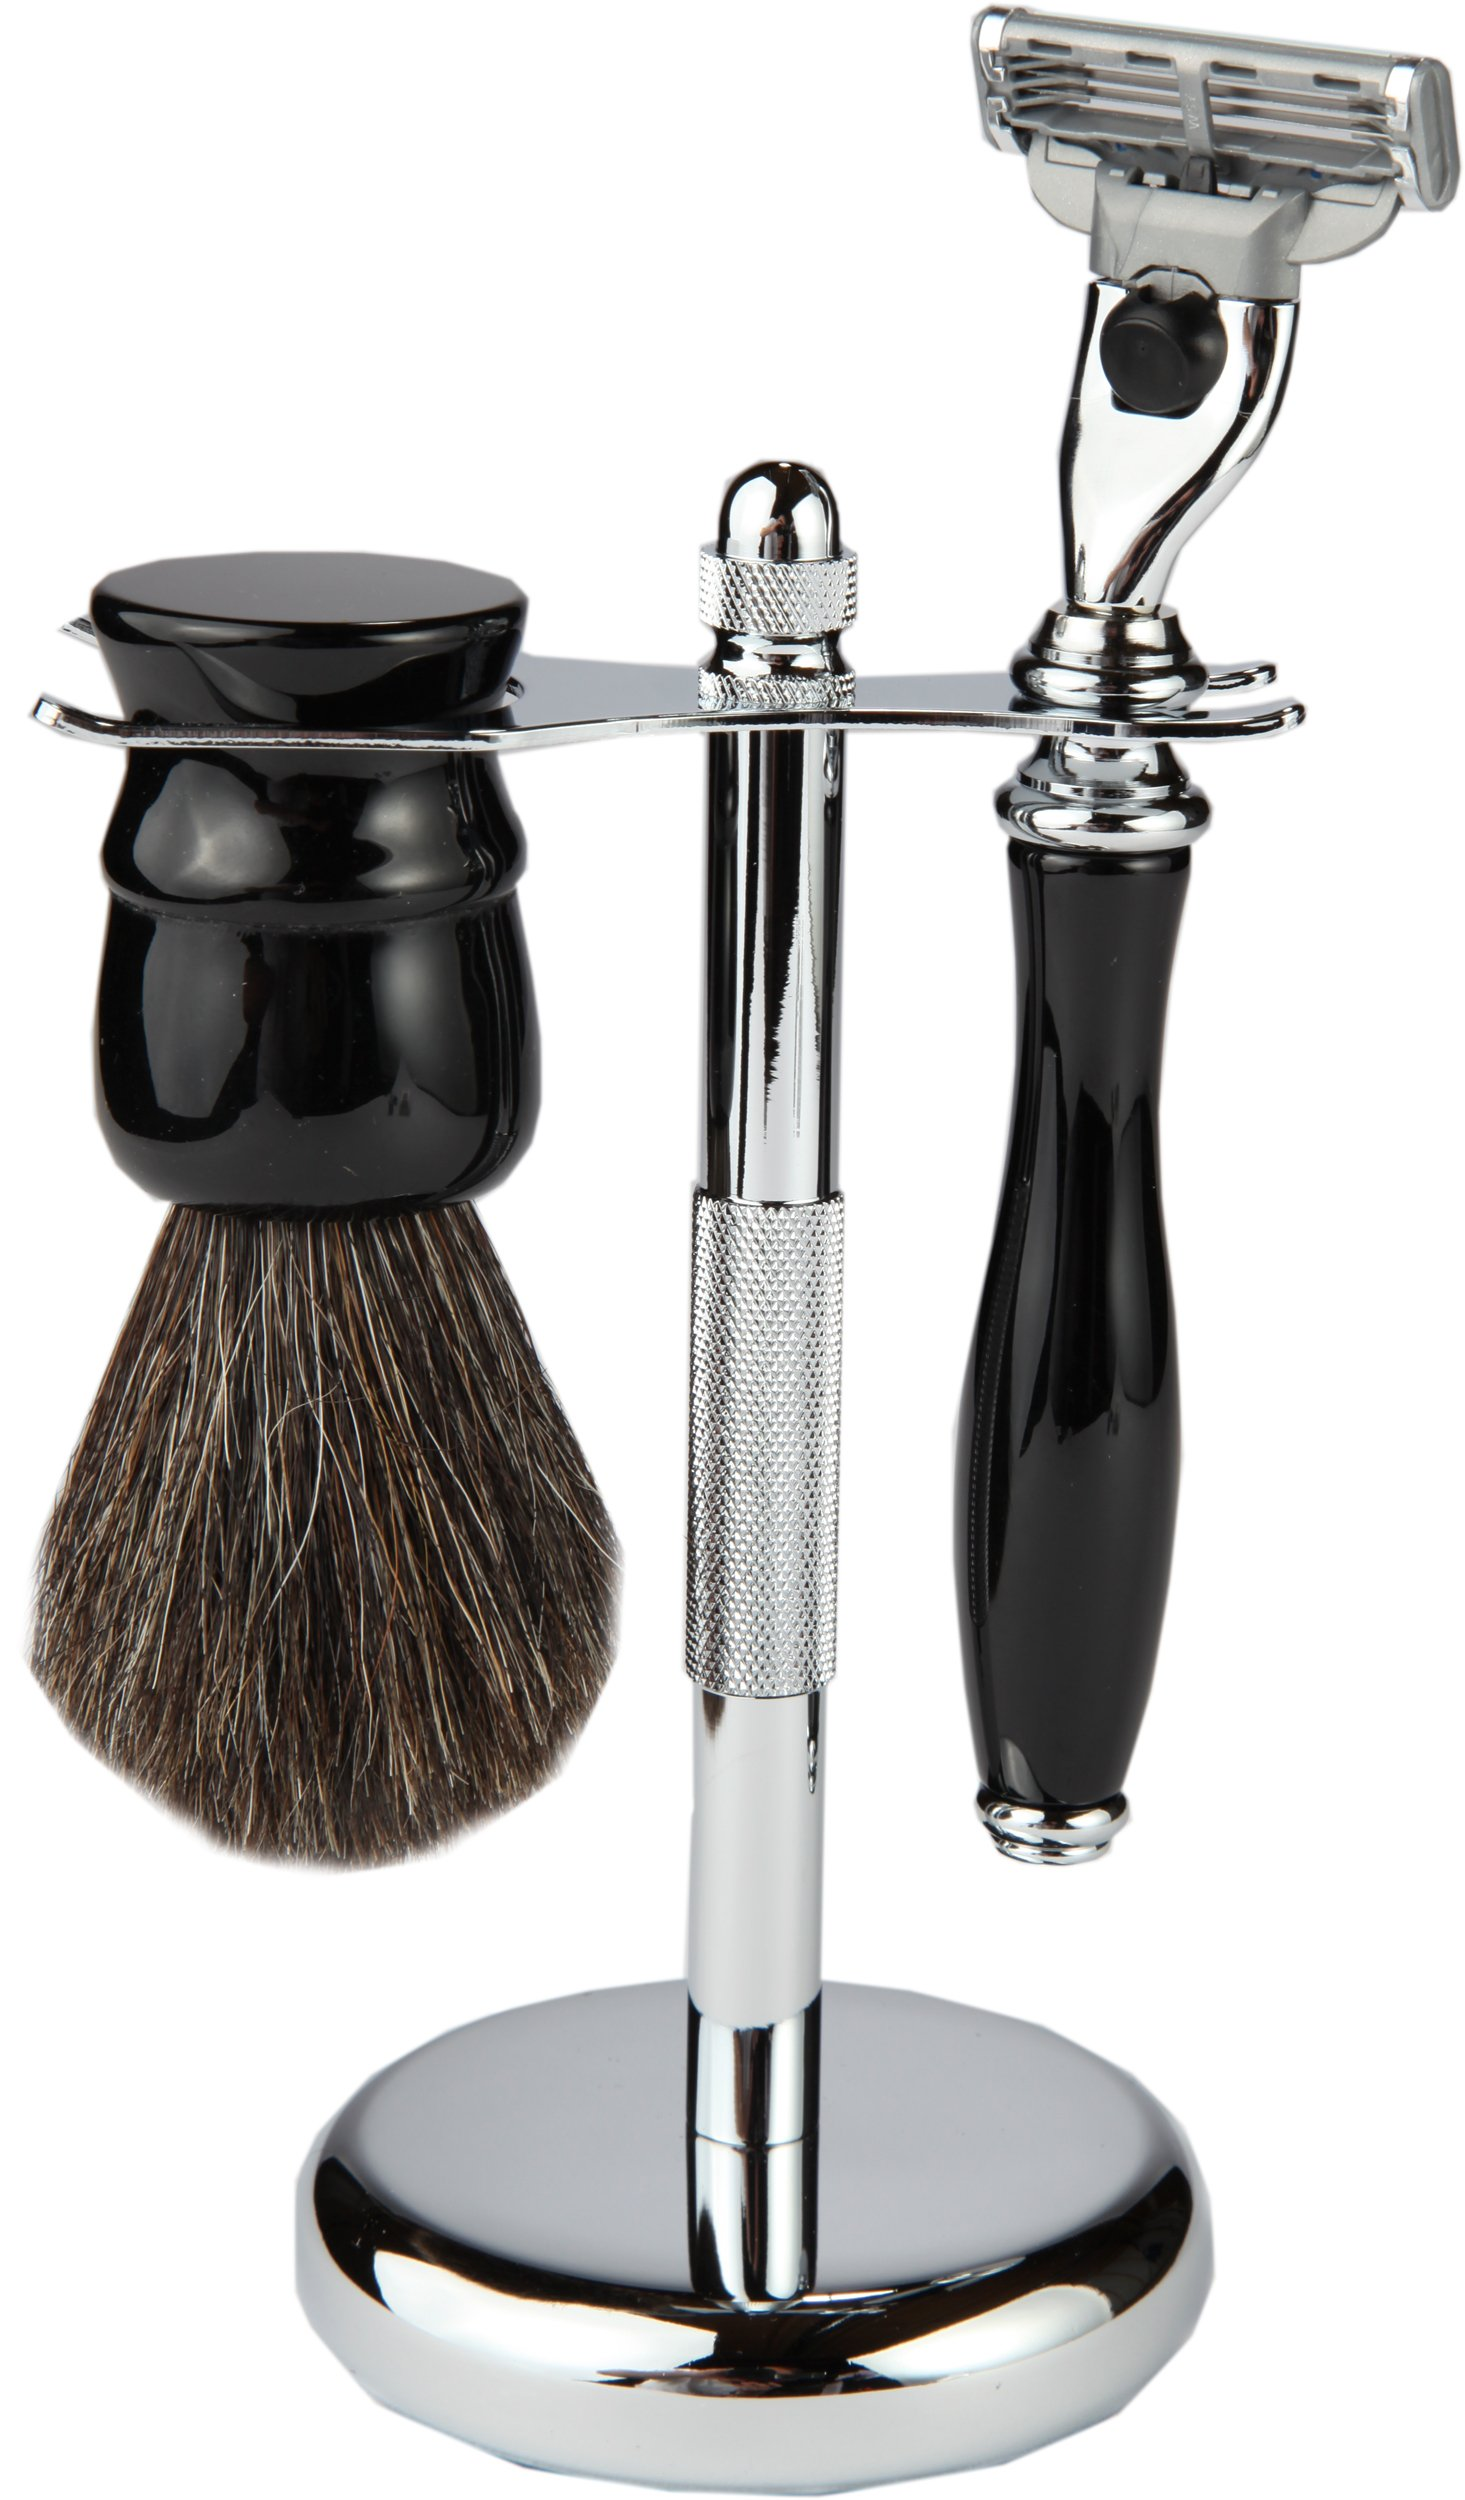 3 Piece Shaving Set With Mach 3 Heavyweight Handle, 100% Badger Brush, With All metal Textured Chrome Classy Stand (Matching Black)